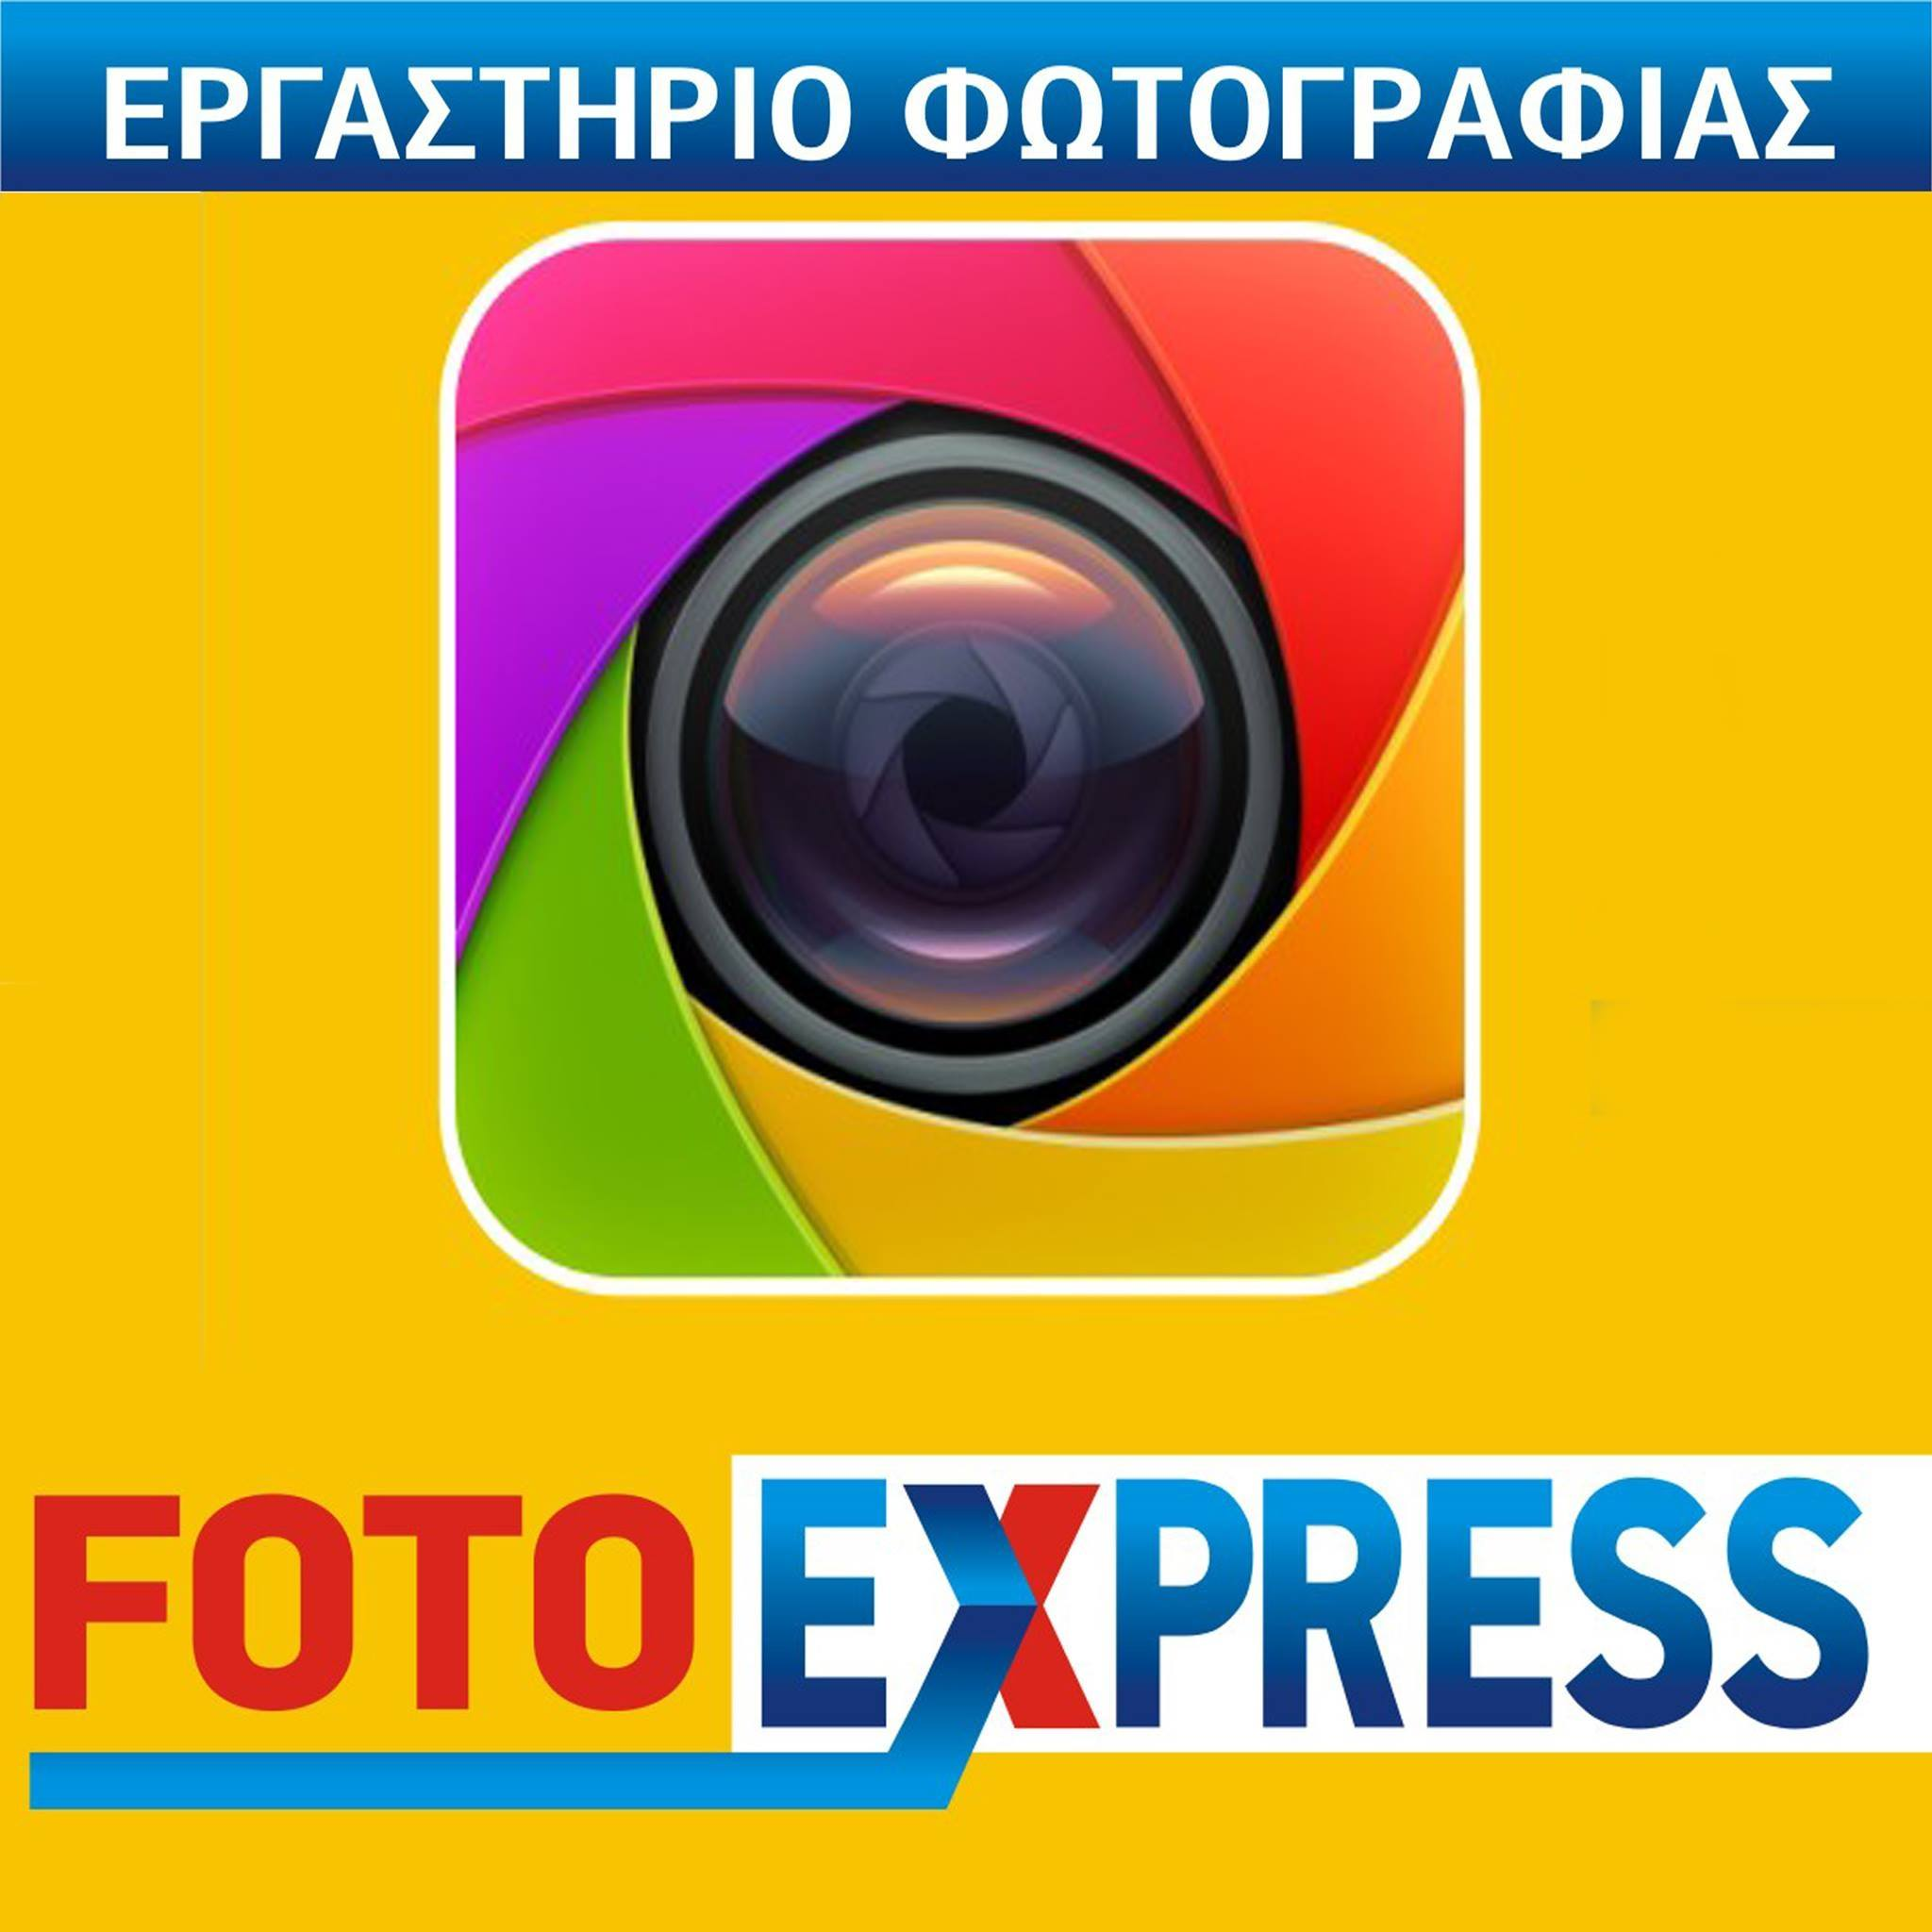 Foto Express - Studio Photography